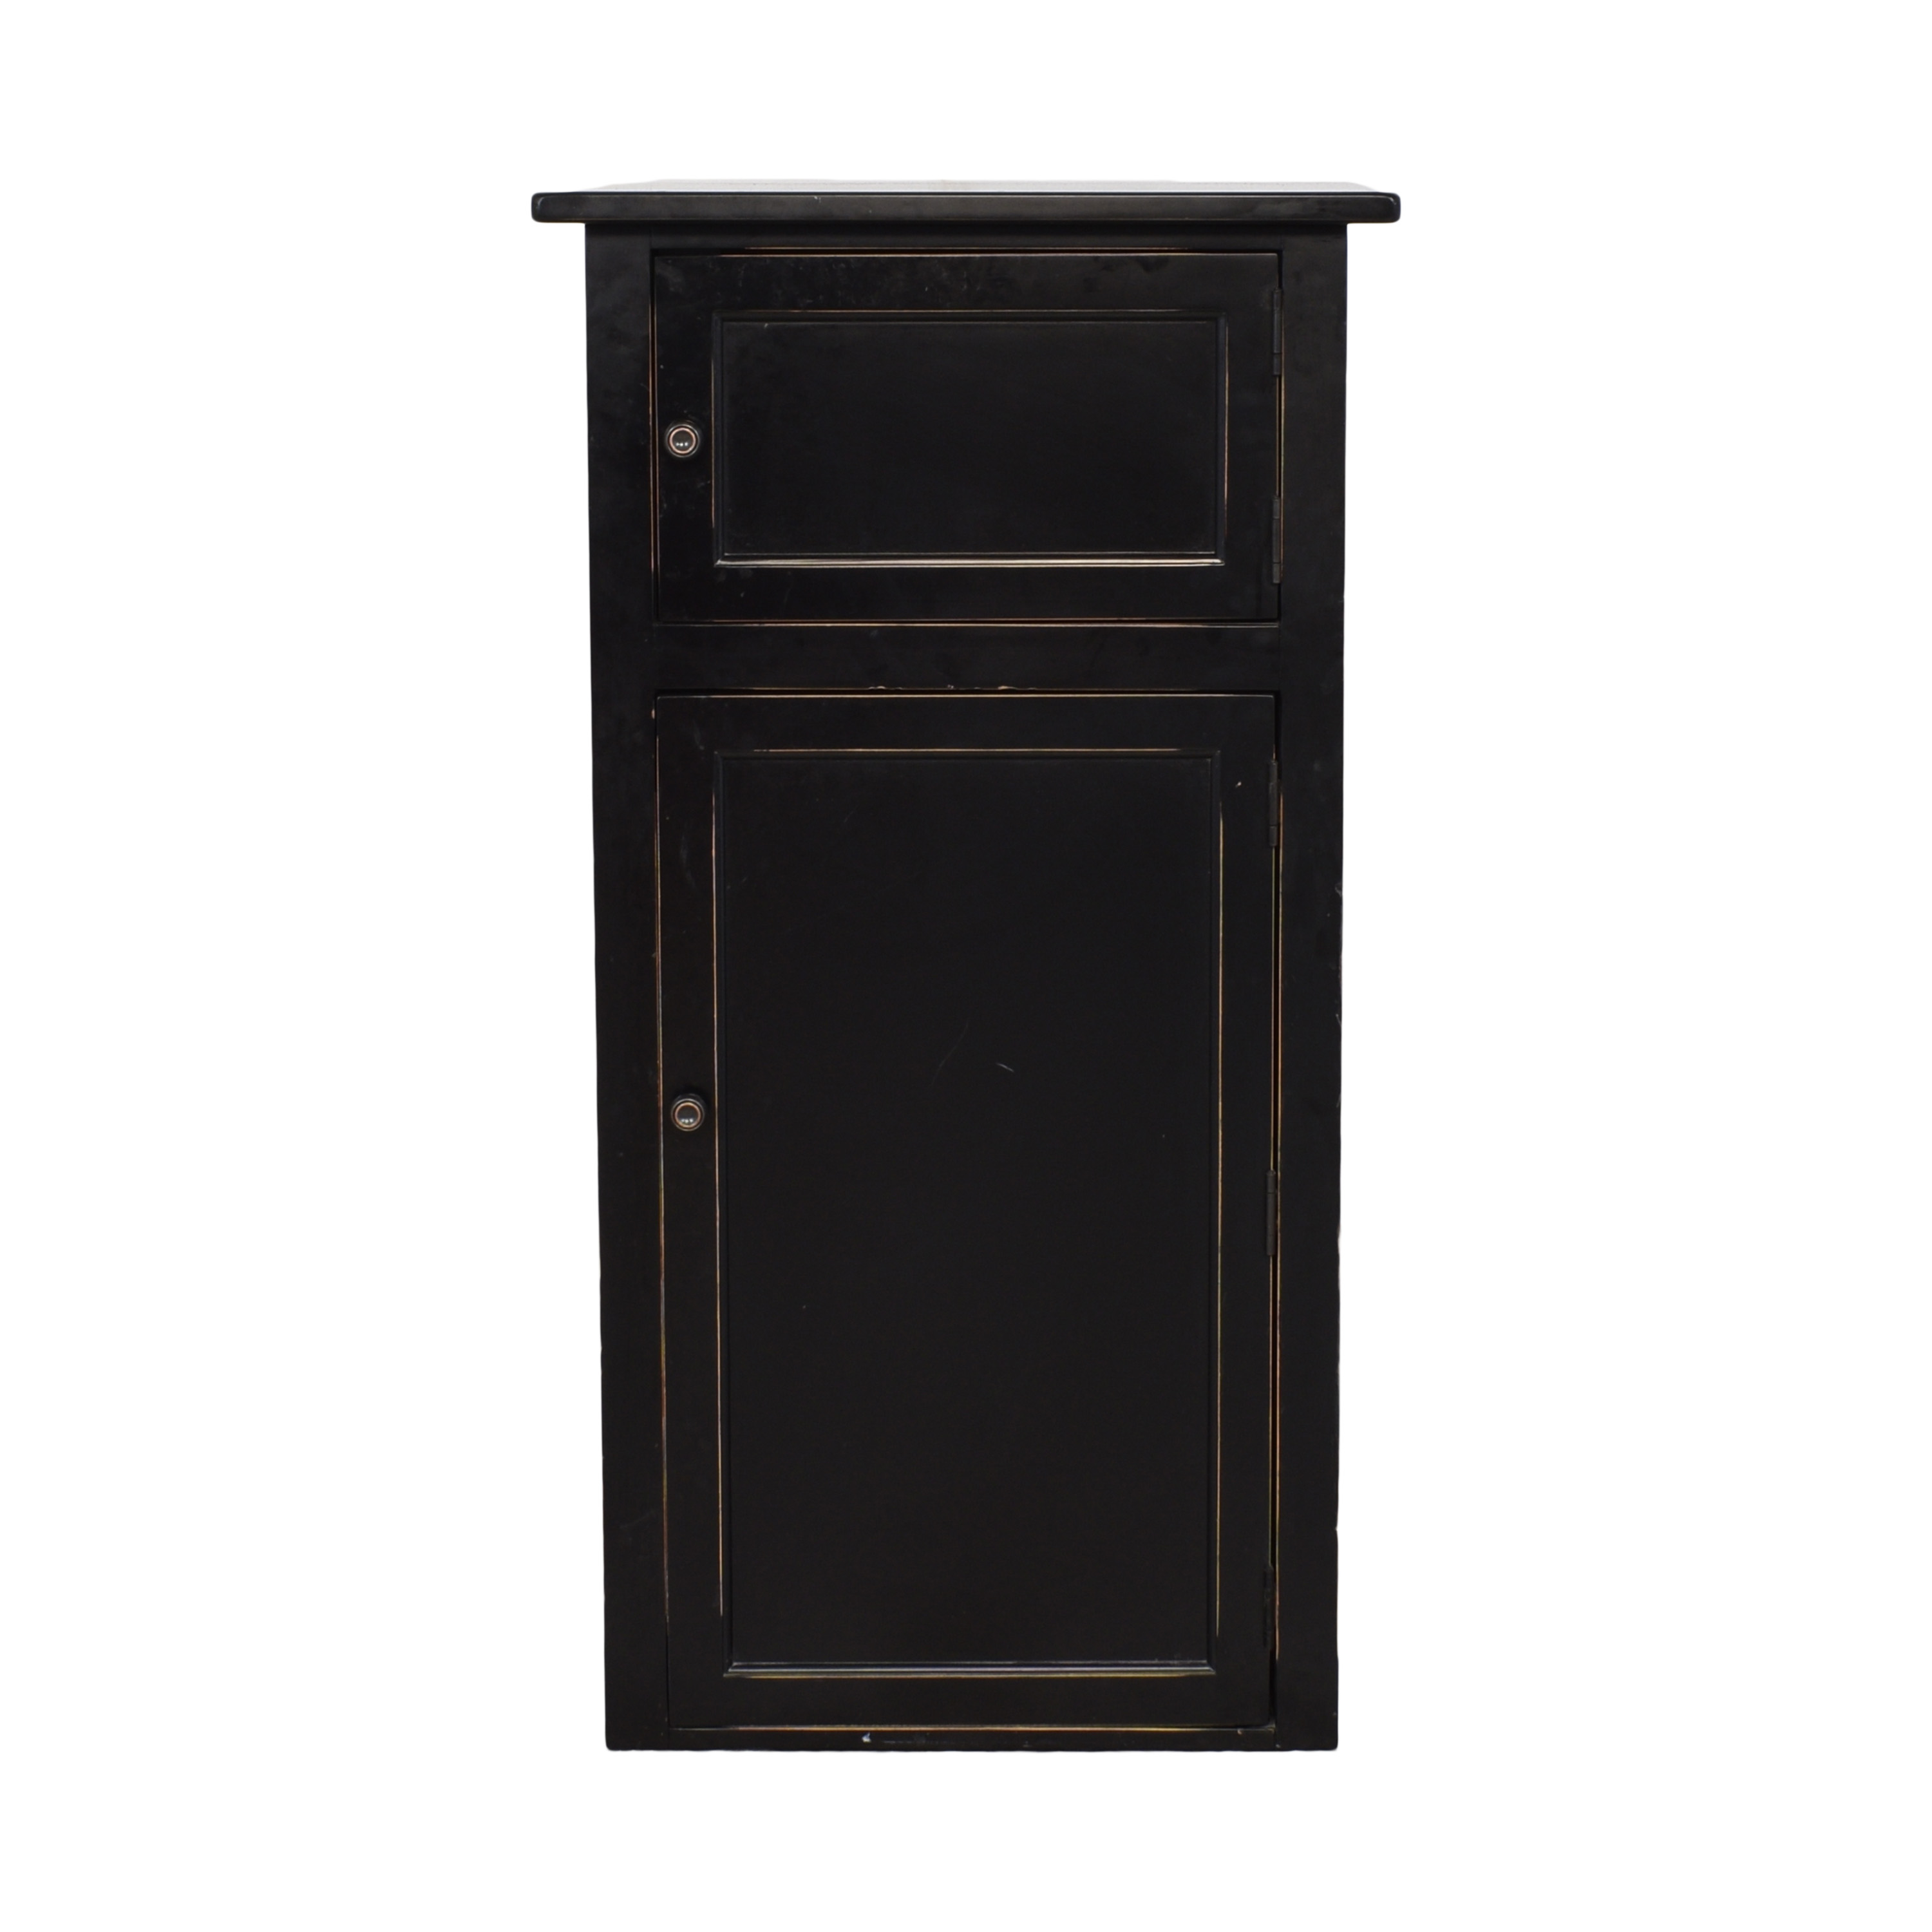 Crate & Barrel Crate & Barrel Two Door Cabinet price